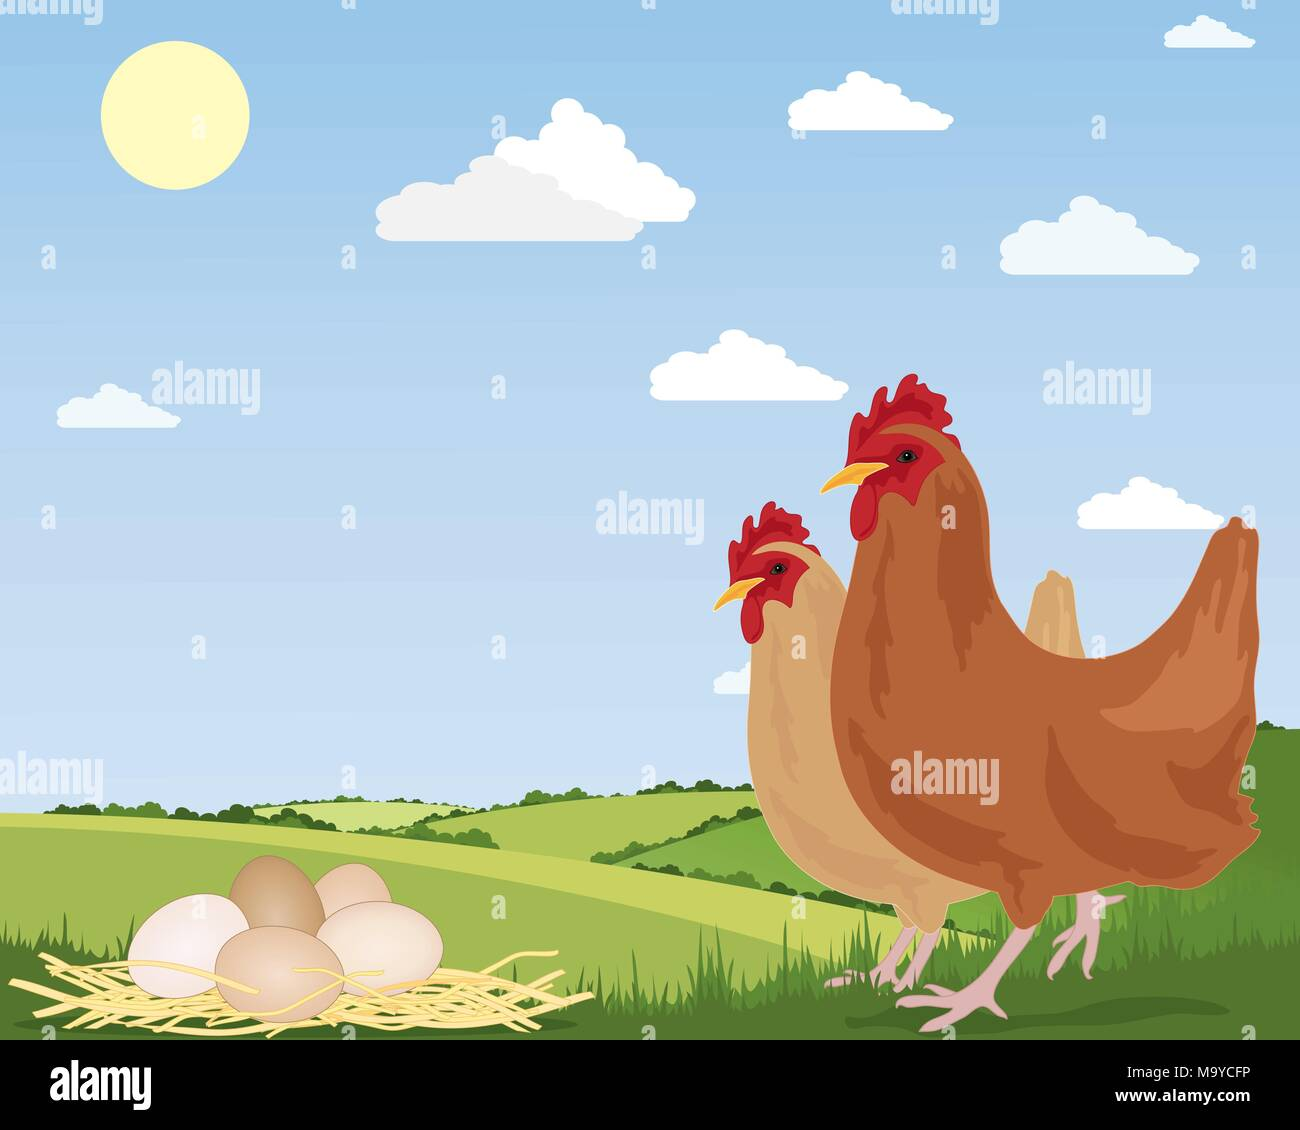 an illustration of two free range chickens with newly laid eggs on straw and scenic countryside under a blue summer sky - Stock Vector